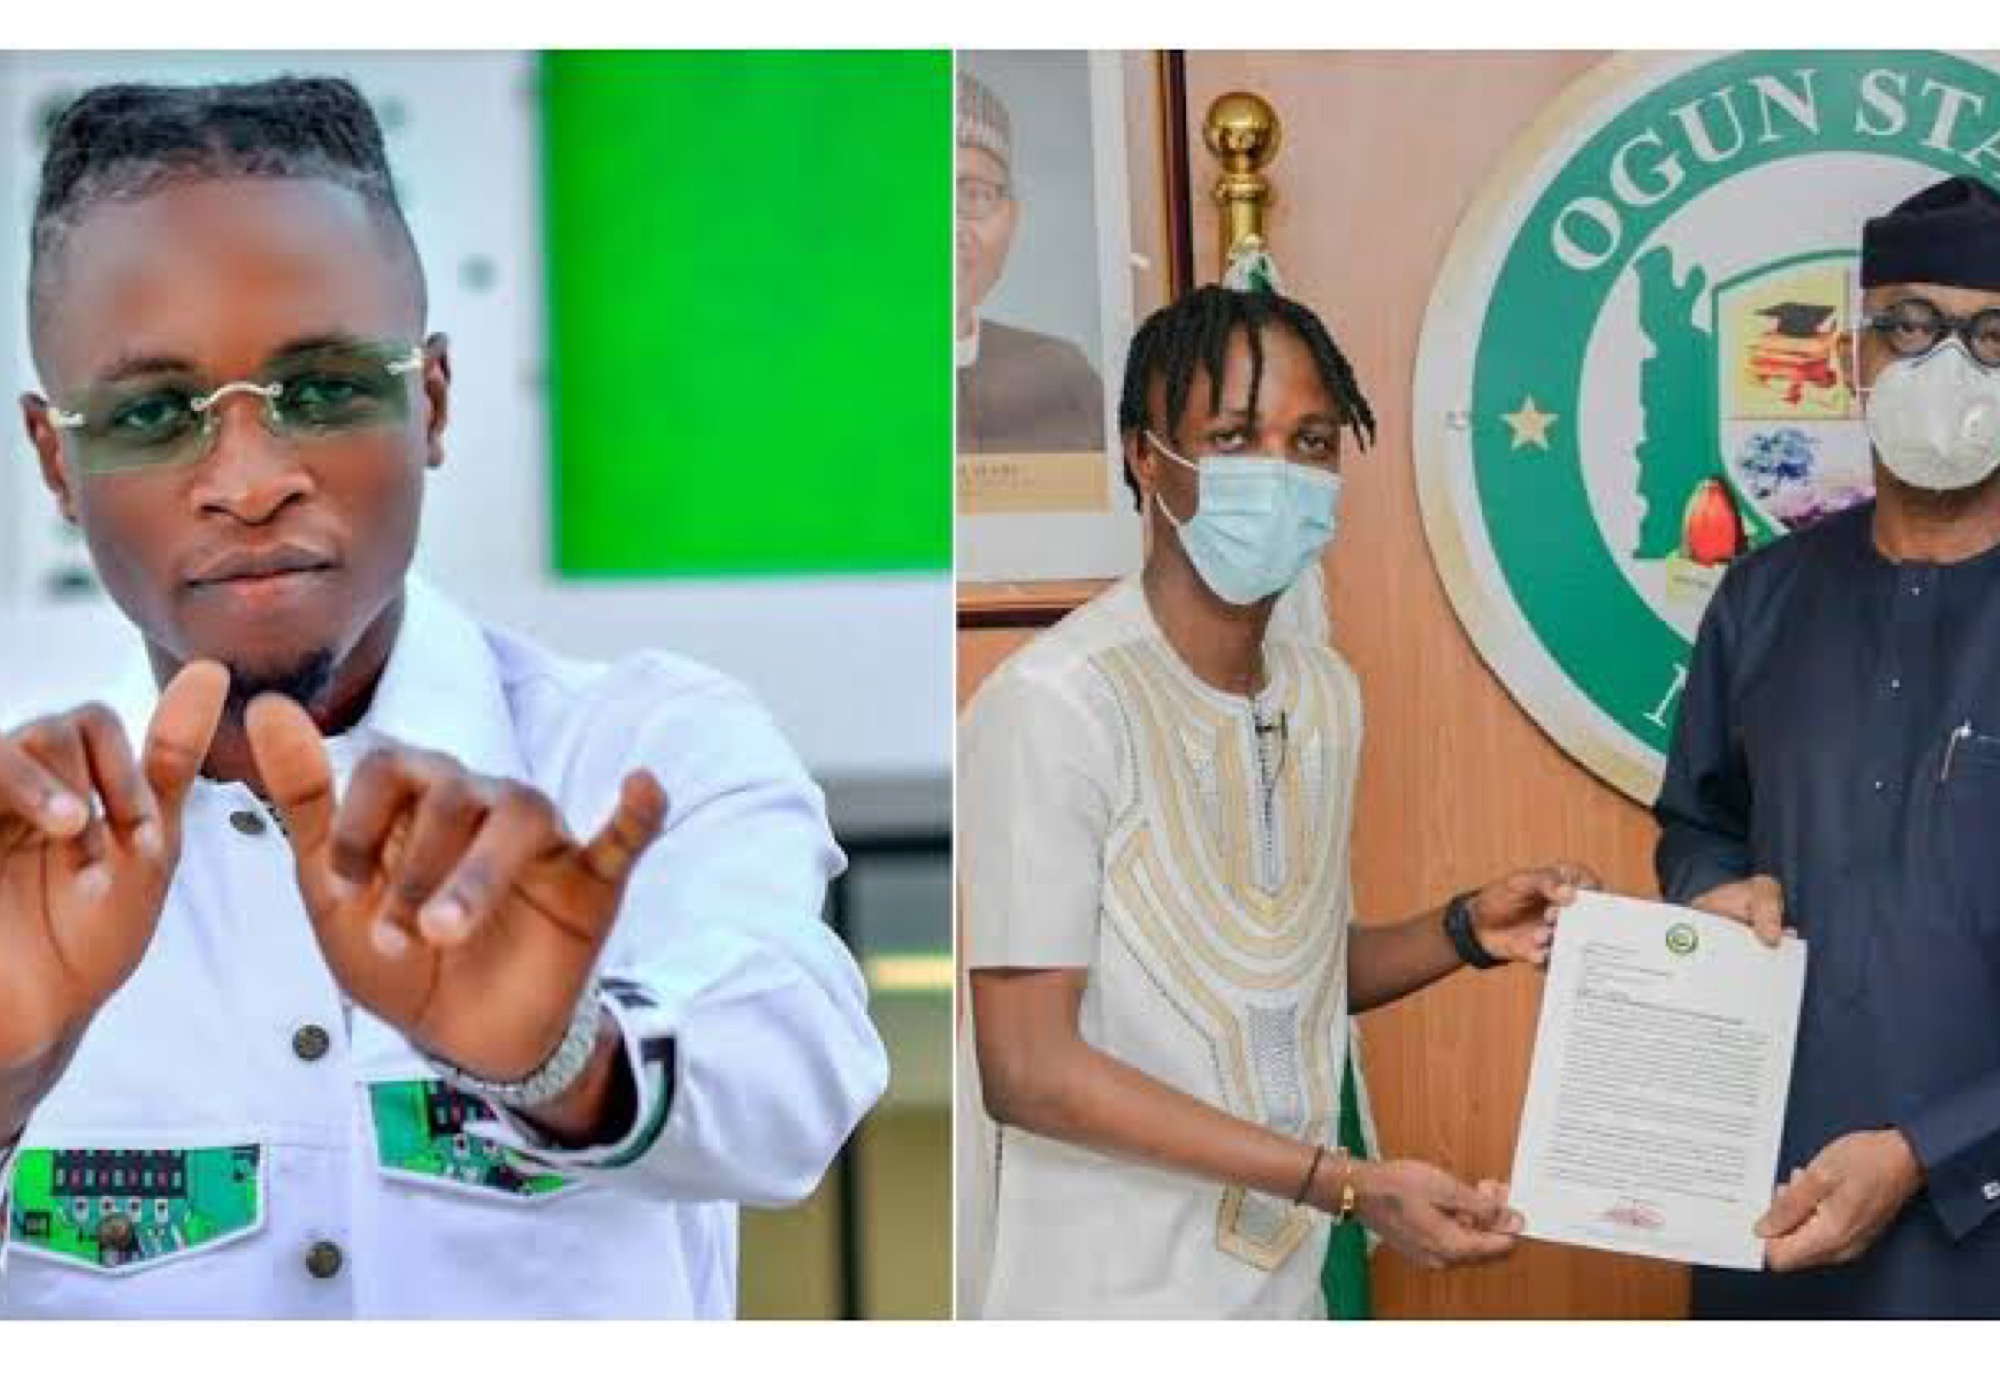 'Why The Youth Must Strive To Make An Impact In Our Nation' - BBNaija's Laycon